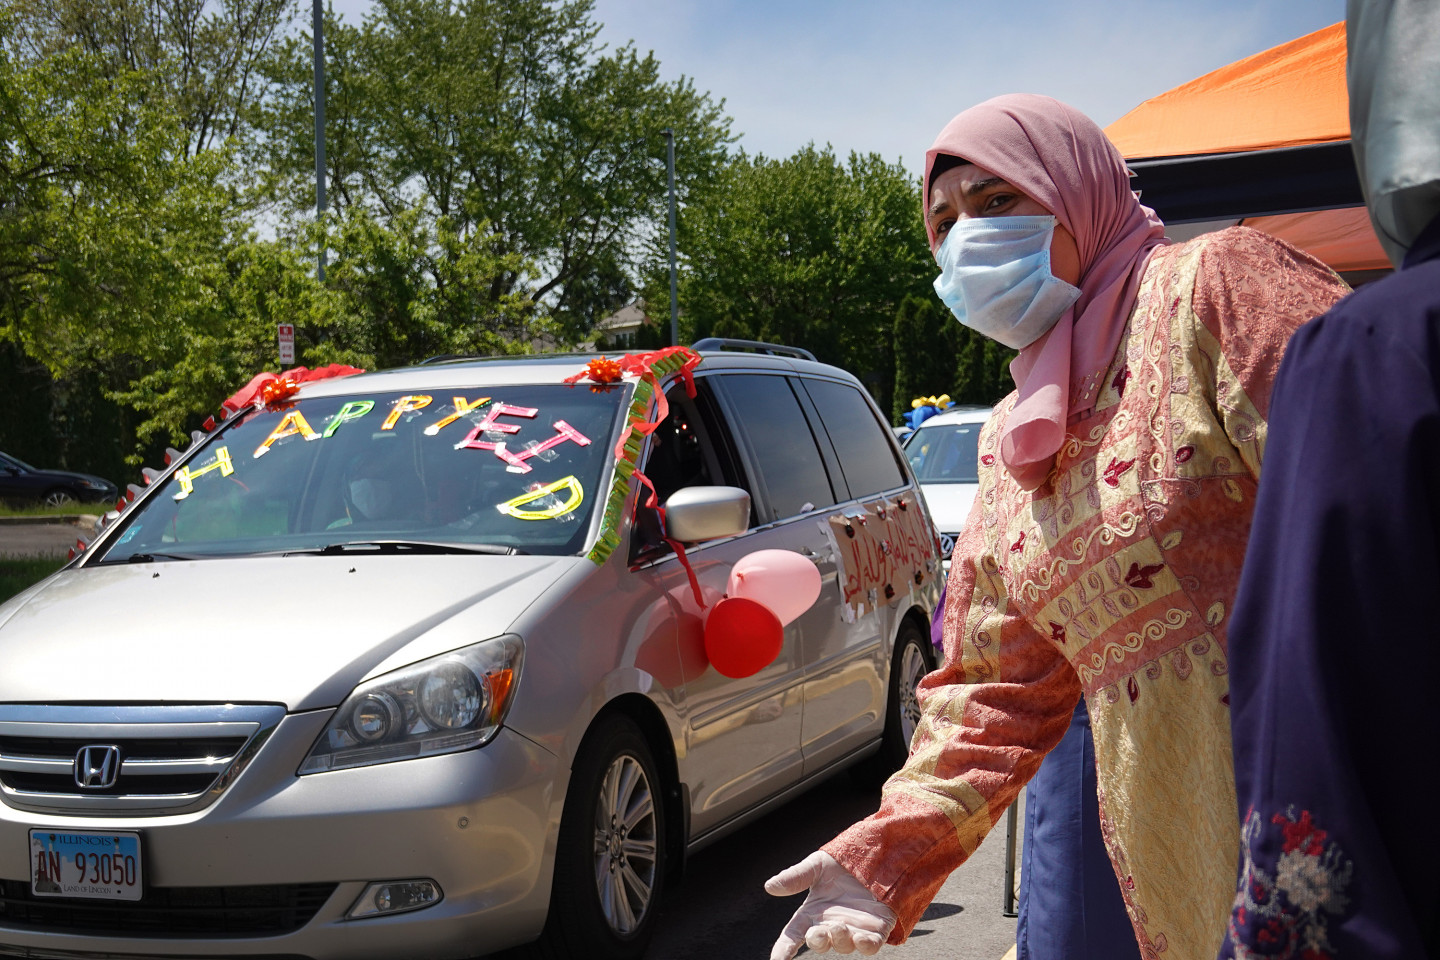 A woman wearing a mask stands next to a car decorated for Eid.